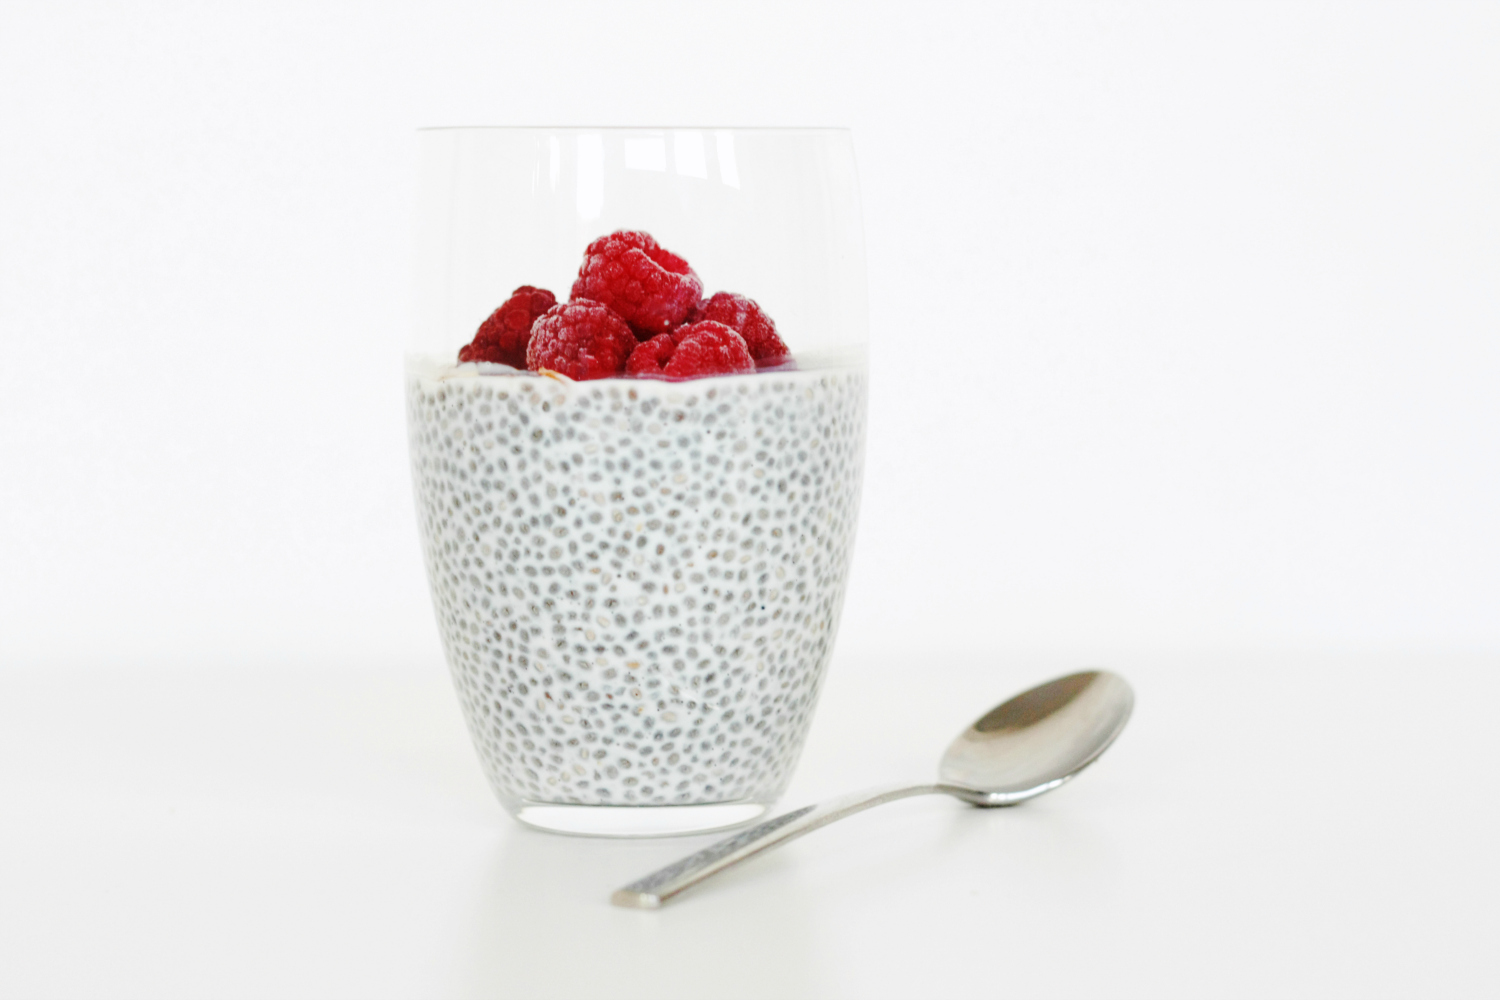 Textured, simple chia pudding with fresh rasberries